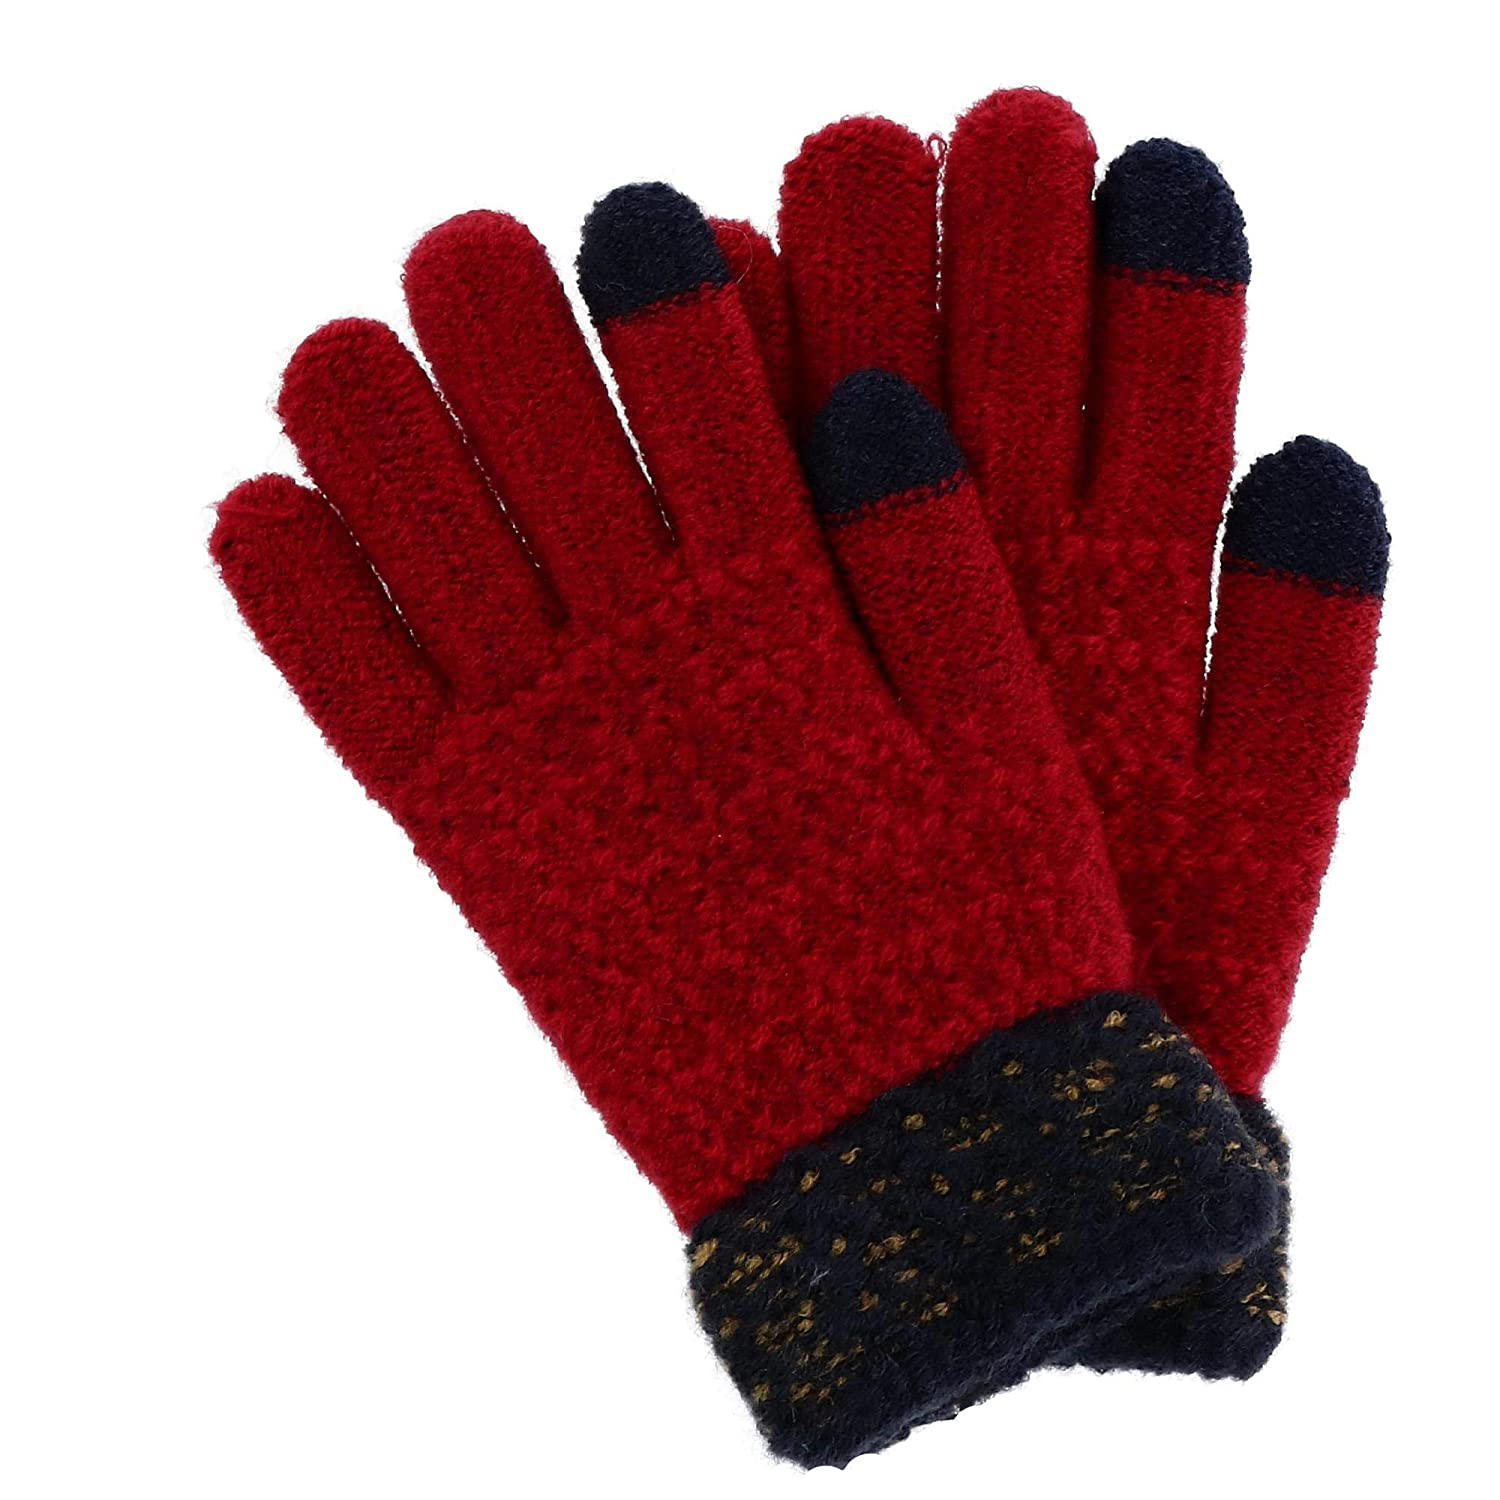 Foemo Junior Girl's Two-Tone Knit Winter Gloves, Black